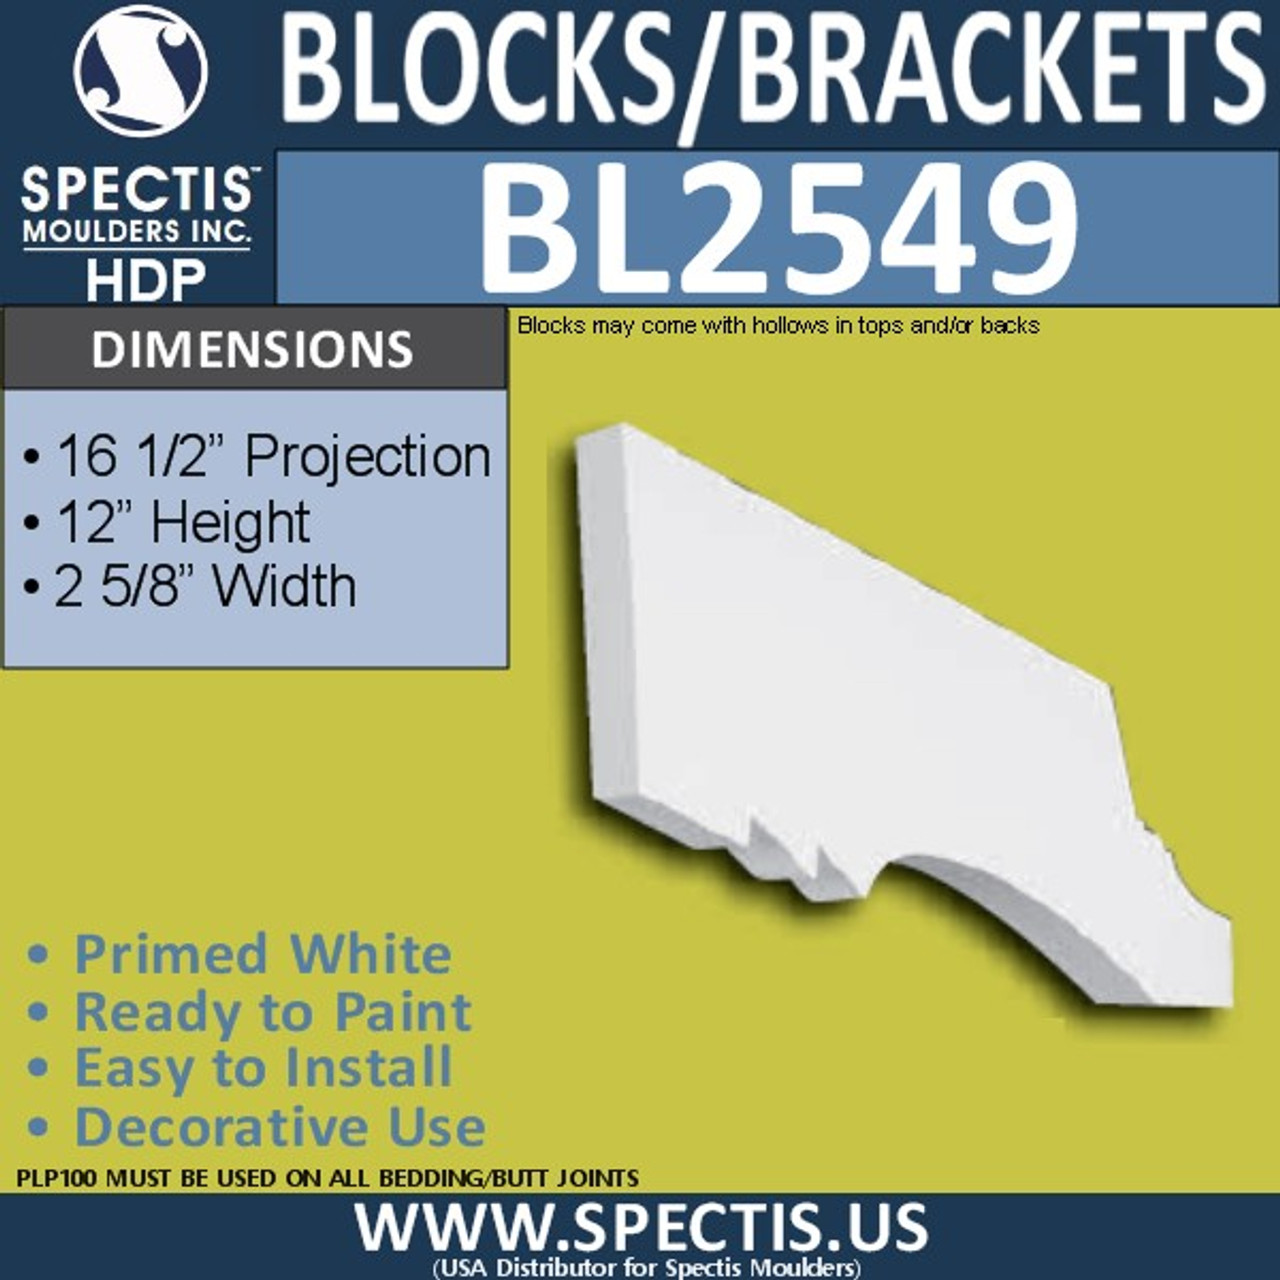 "BL2549 Eave Block or Bracket 2.5""W x 7.25""H x 16.5"" P"